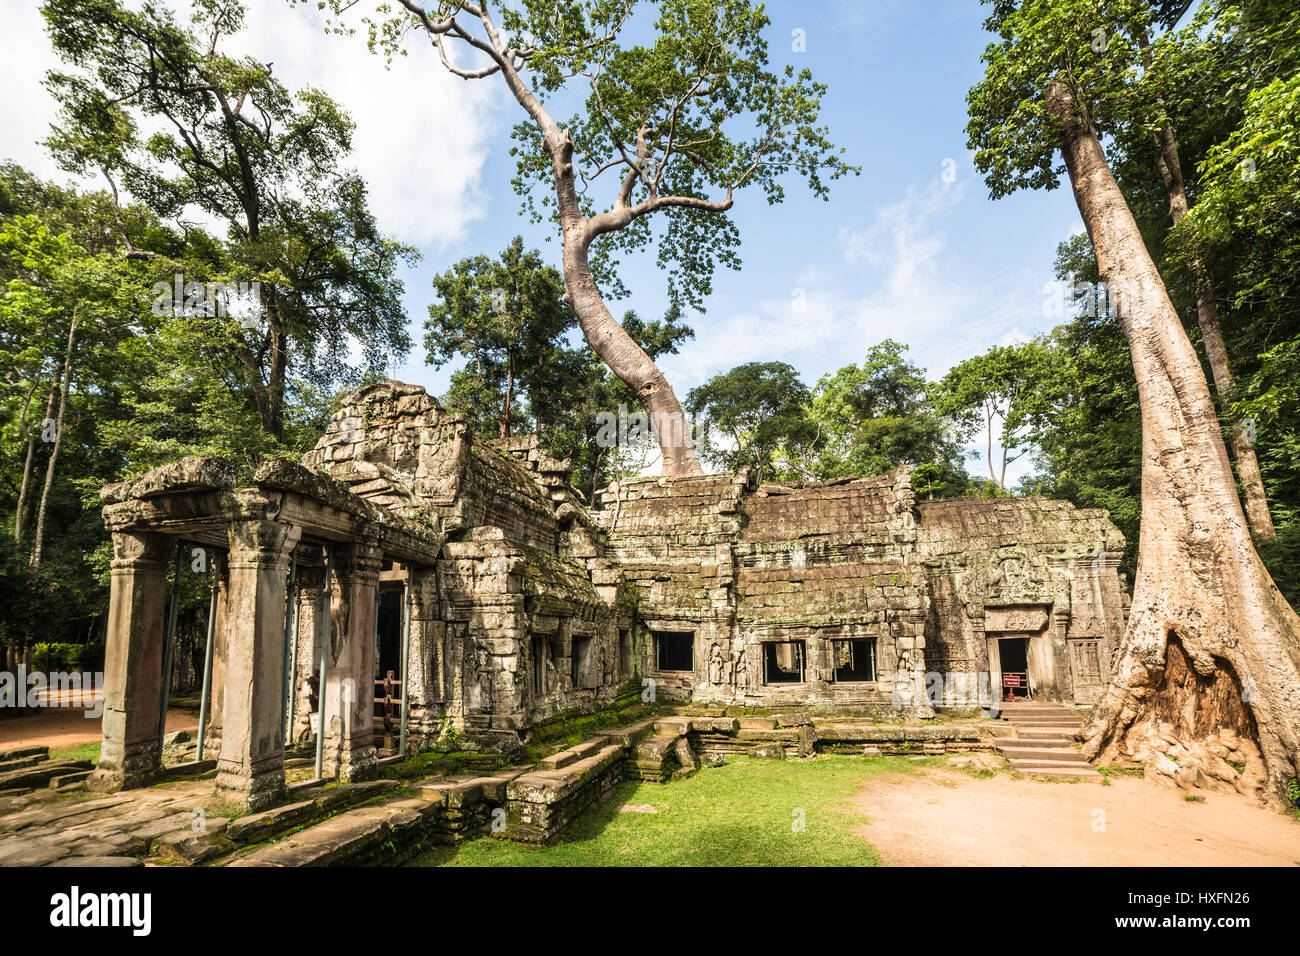 Famous Khmer Ta Prohm temple in the Angkor Wat complex in Siem Reap, Cambodia where nature merges with stones. - Stock Image